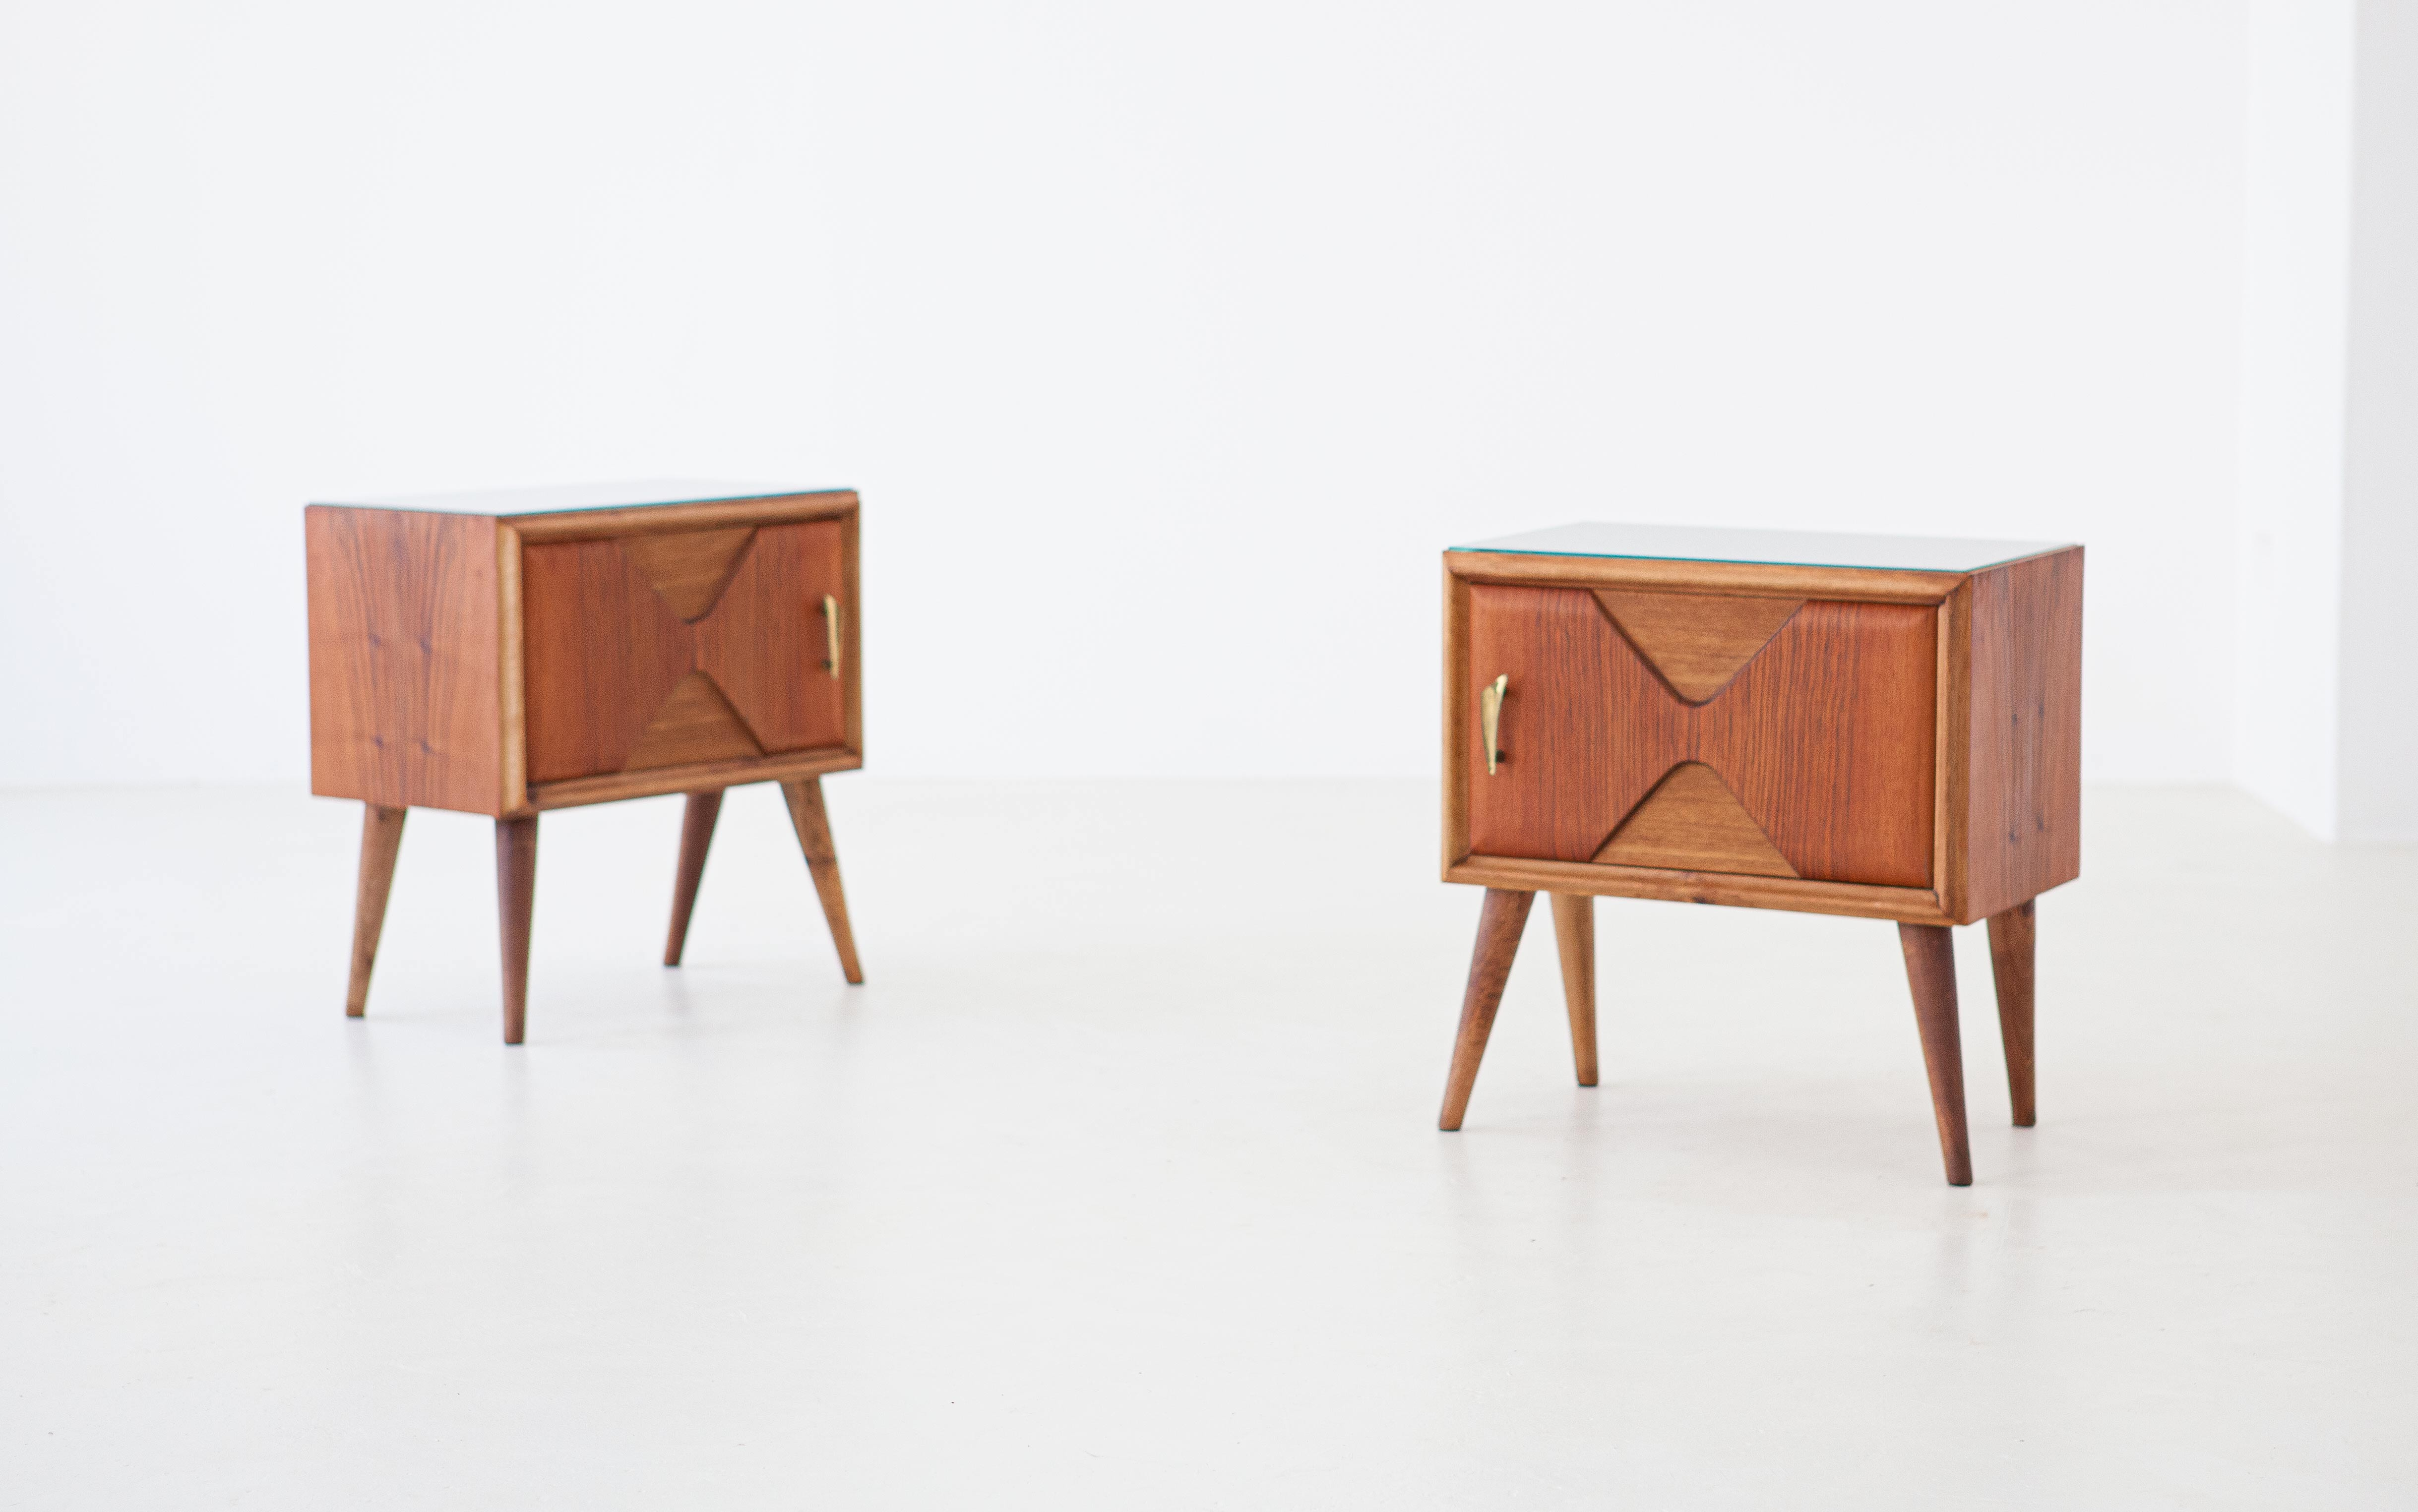 1950s-italian-exotic-wood-brass-glass-bedside-tables-1-BT81